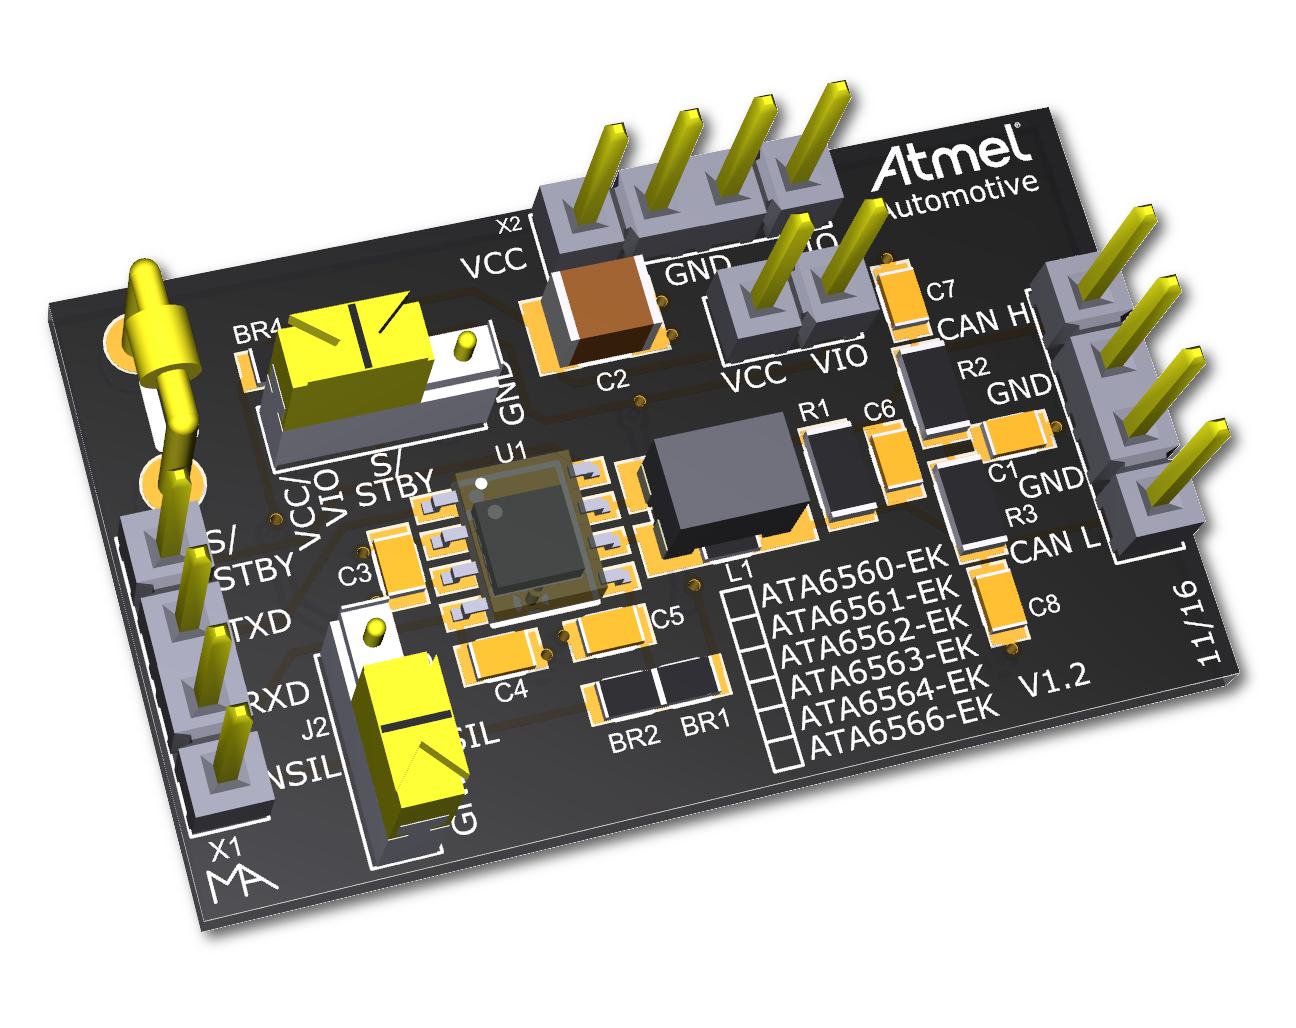 Development Tools The Miniature Circuit Board Has 256mb Of Ram One Audio And Two Usb For Ata6560 Enables Users To Rapidly Carry Out Prototyping Testing New Can Designs With High Speed